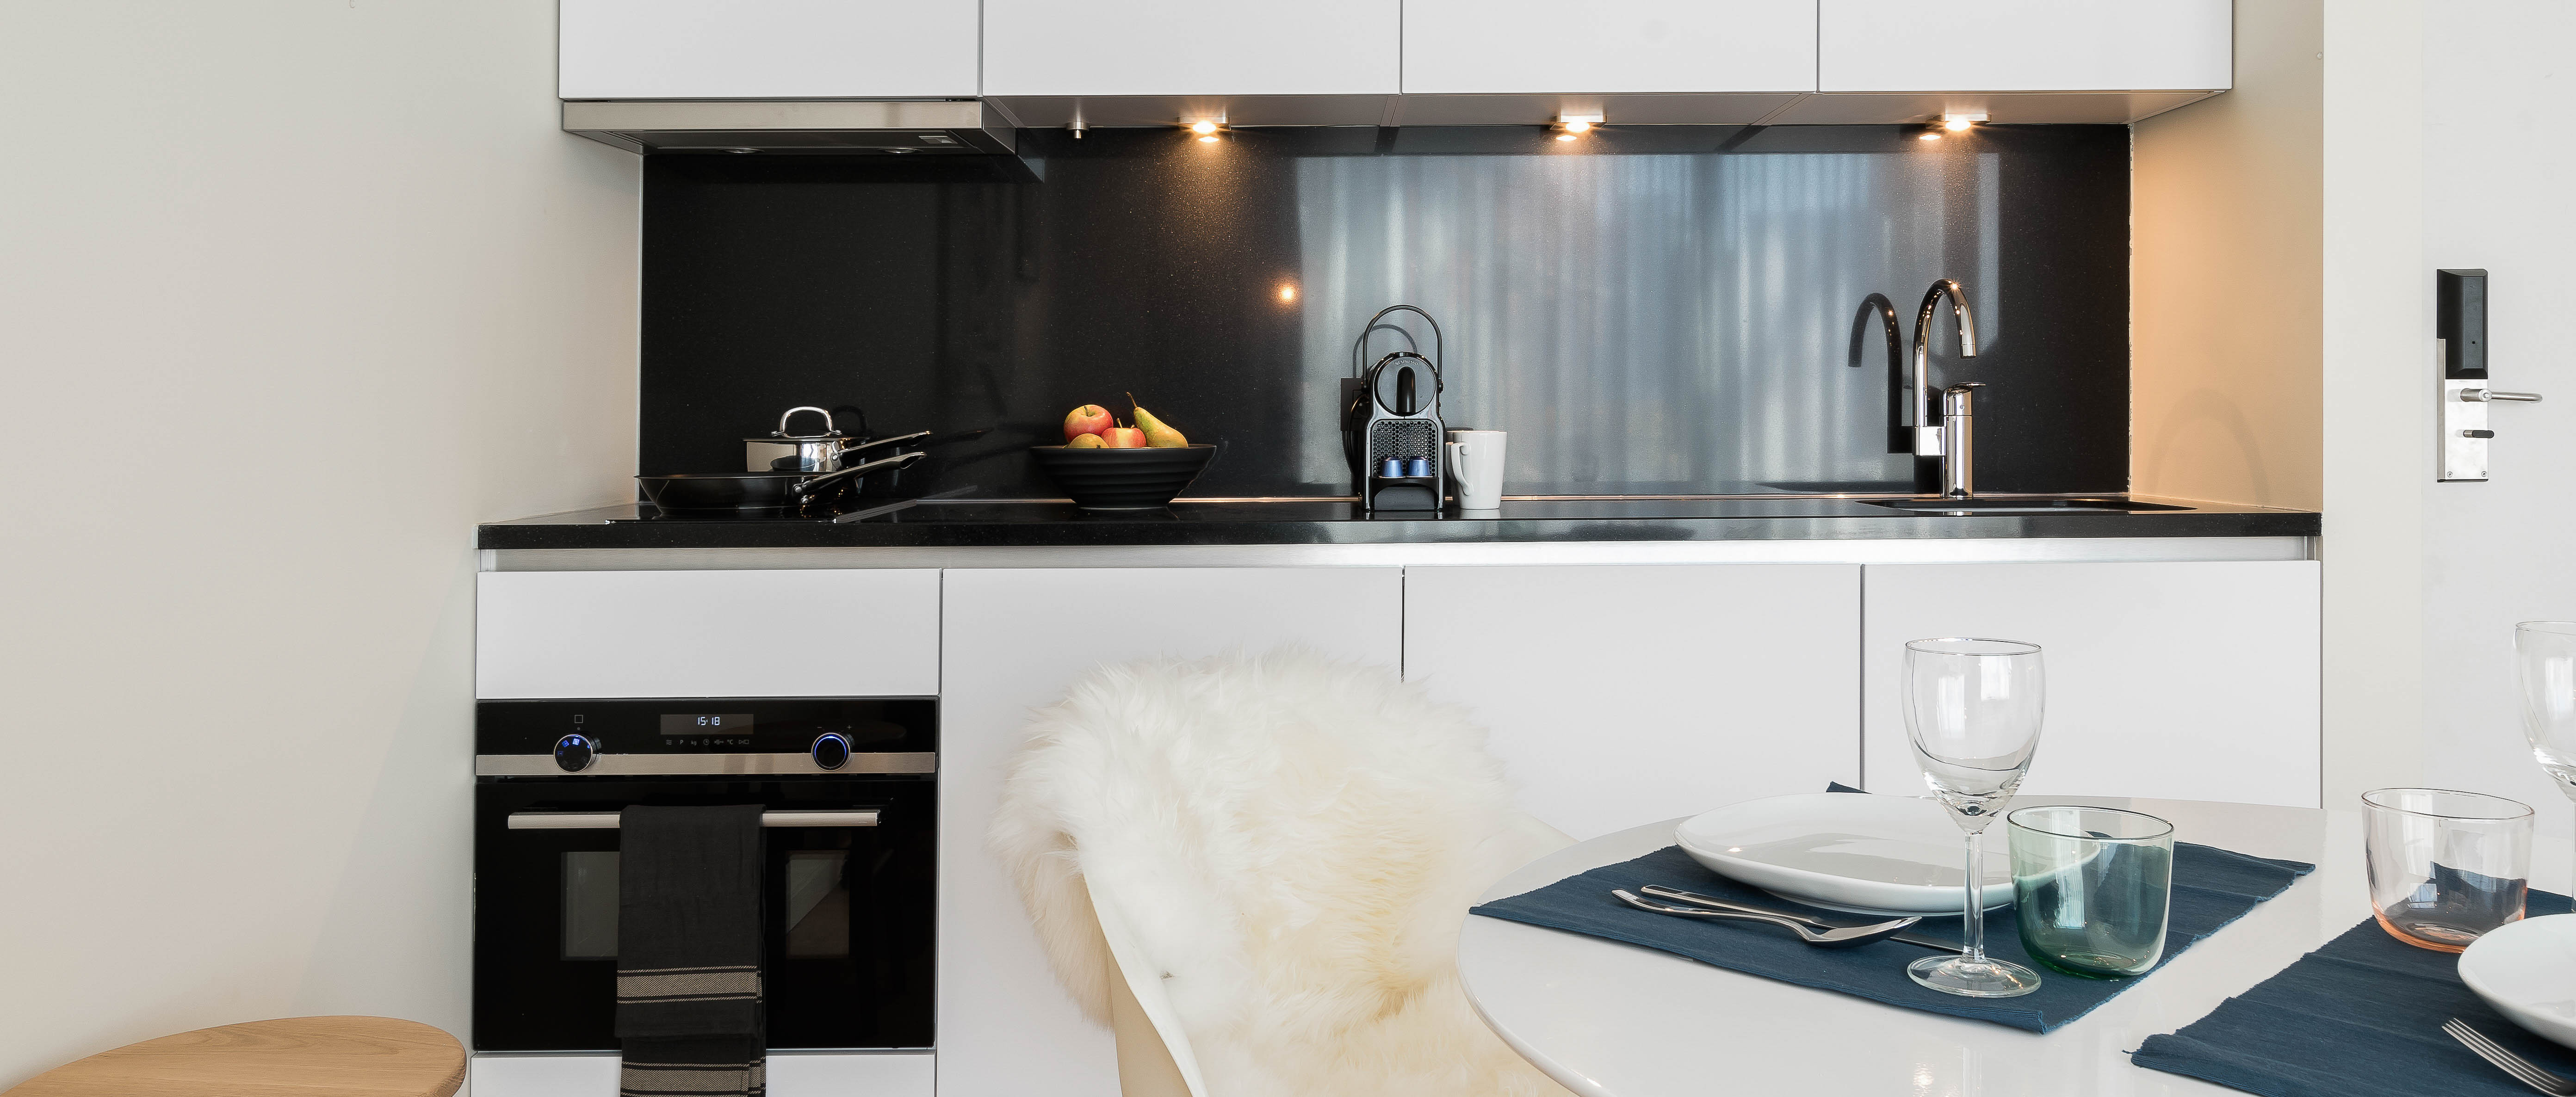 Modern kitchen and dining set up PREMIER SUITES Antwerp